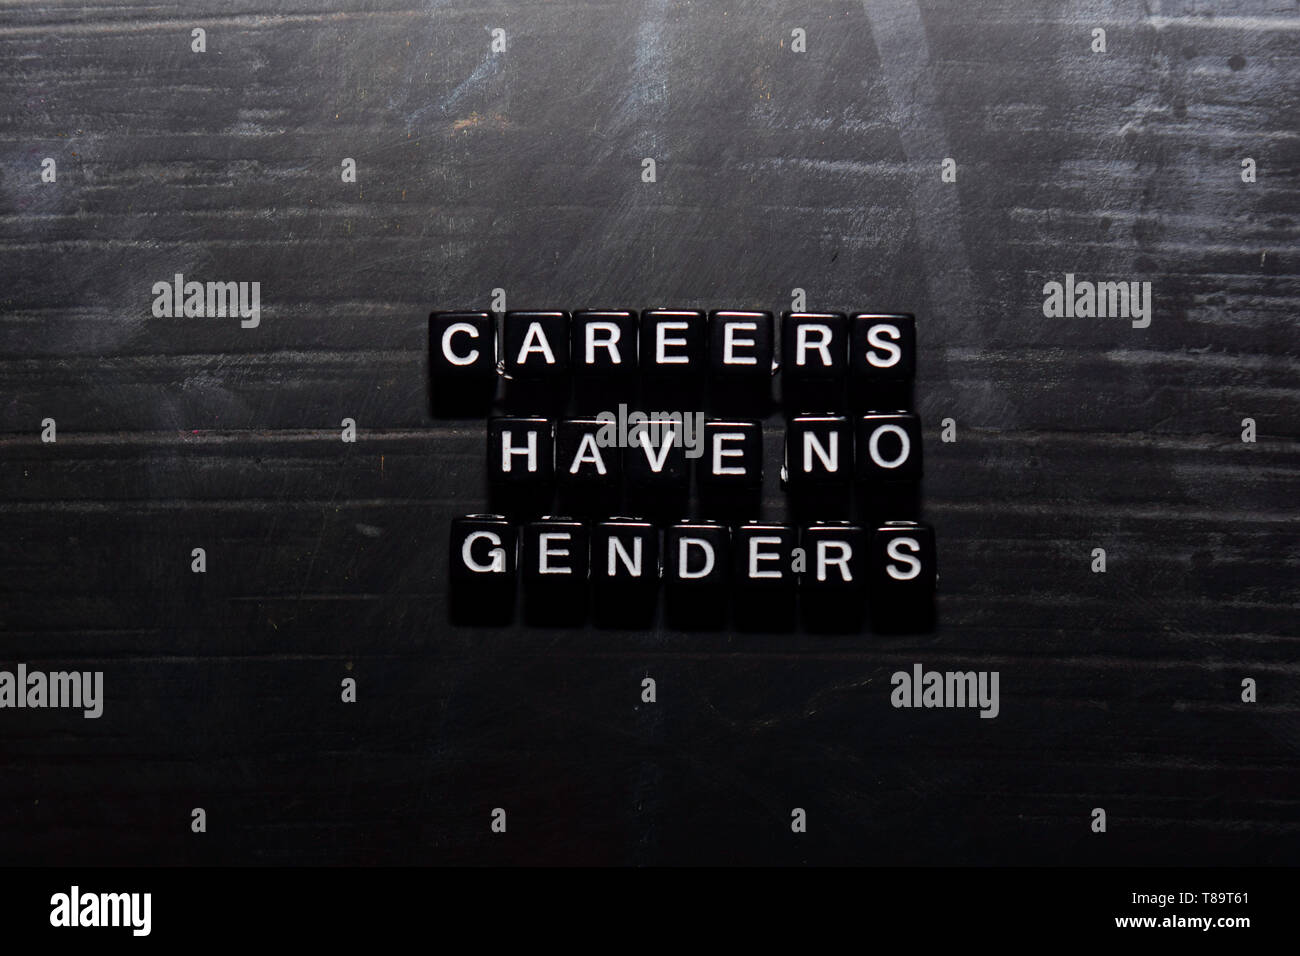 Careers have no genders on wooden blocks. Education, Motivation and inspiration concept - Stock Image